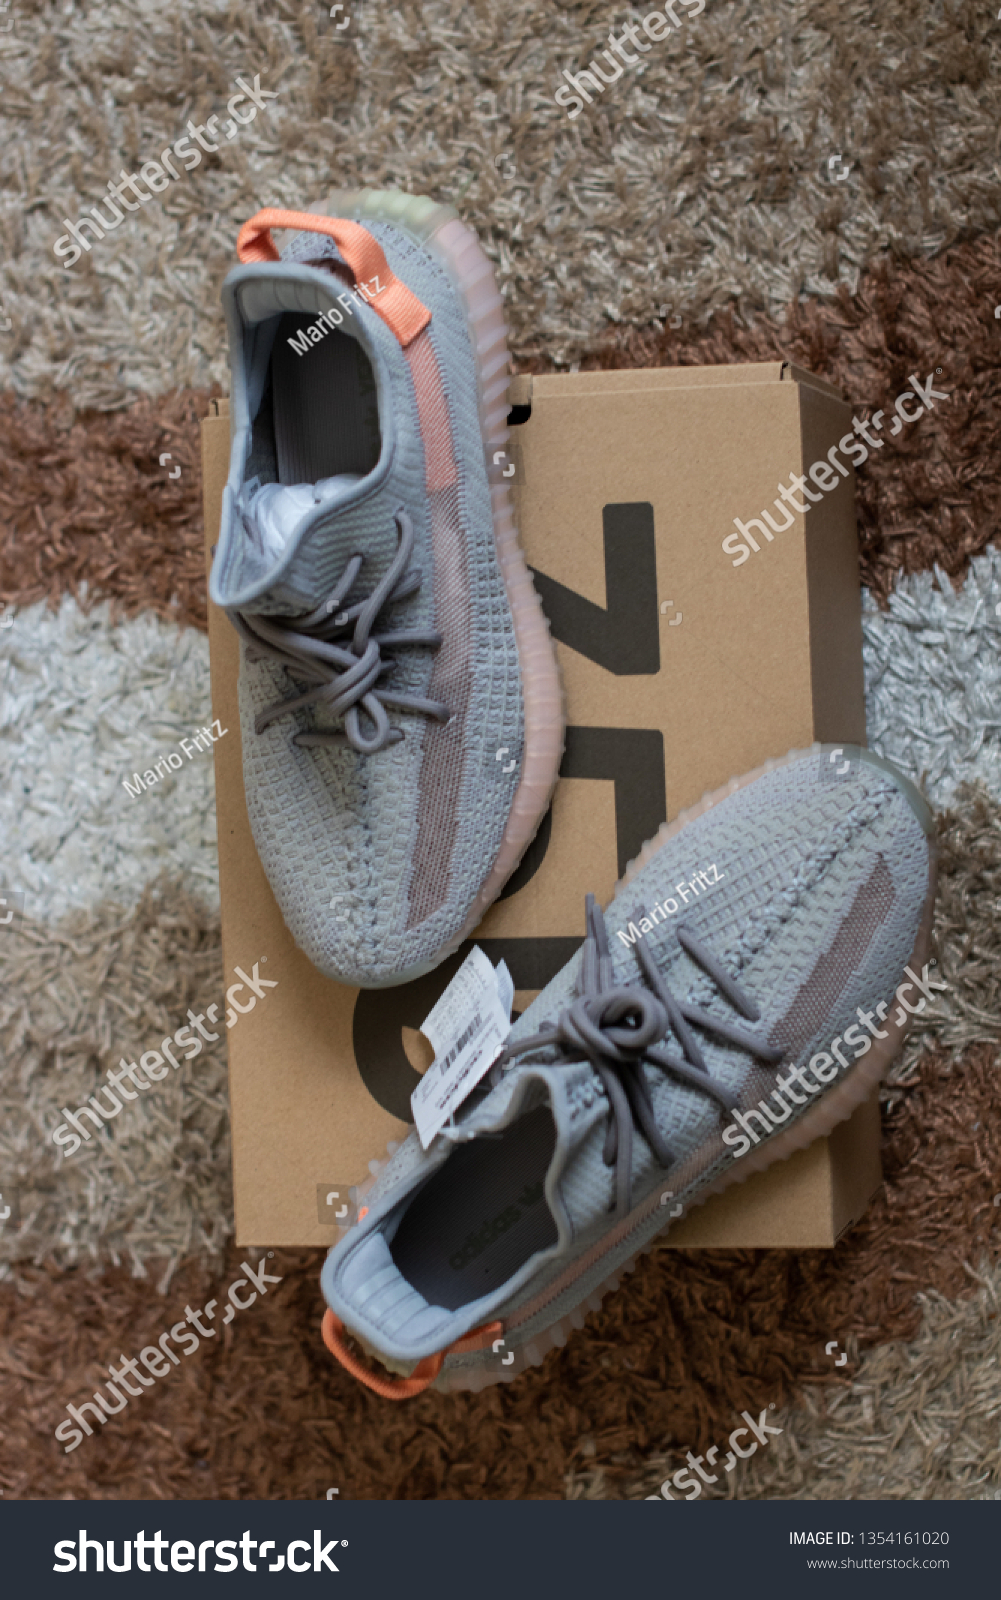 Adidas Yeezy Boost 350 V2 Trfrm Stock